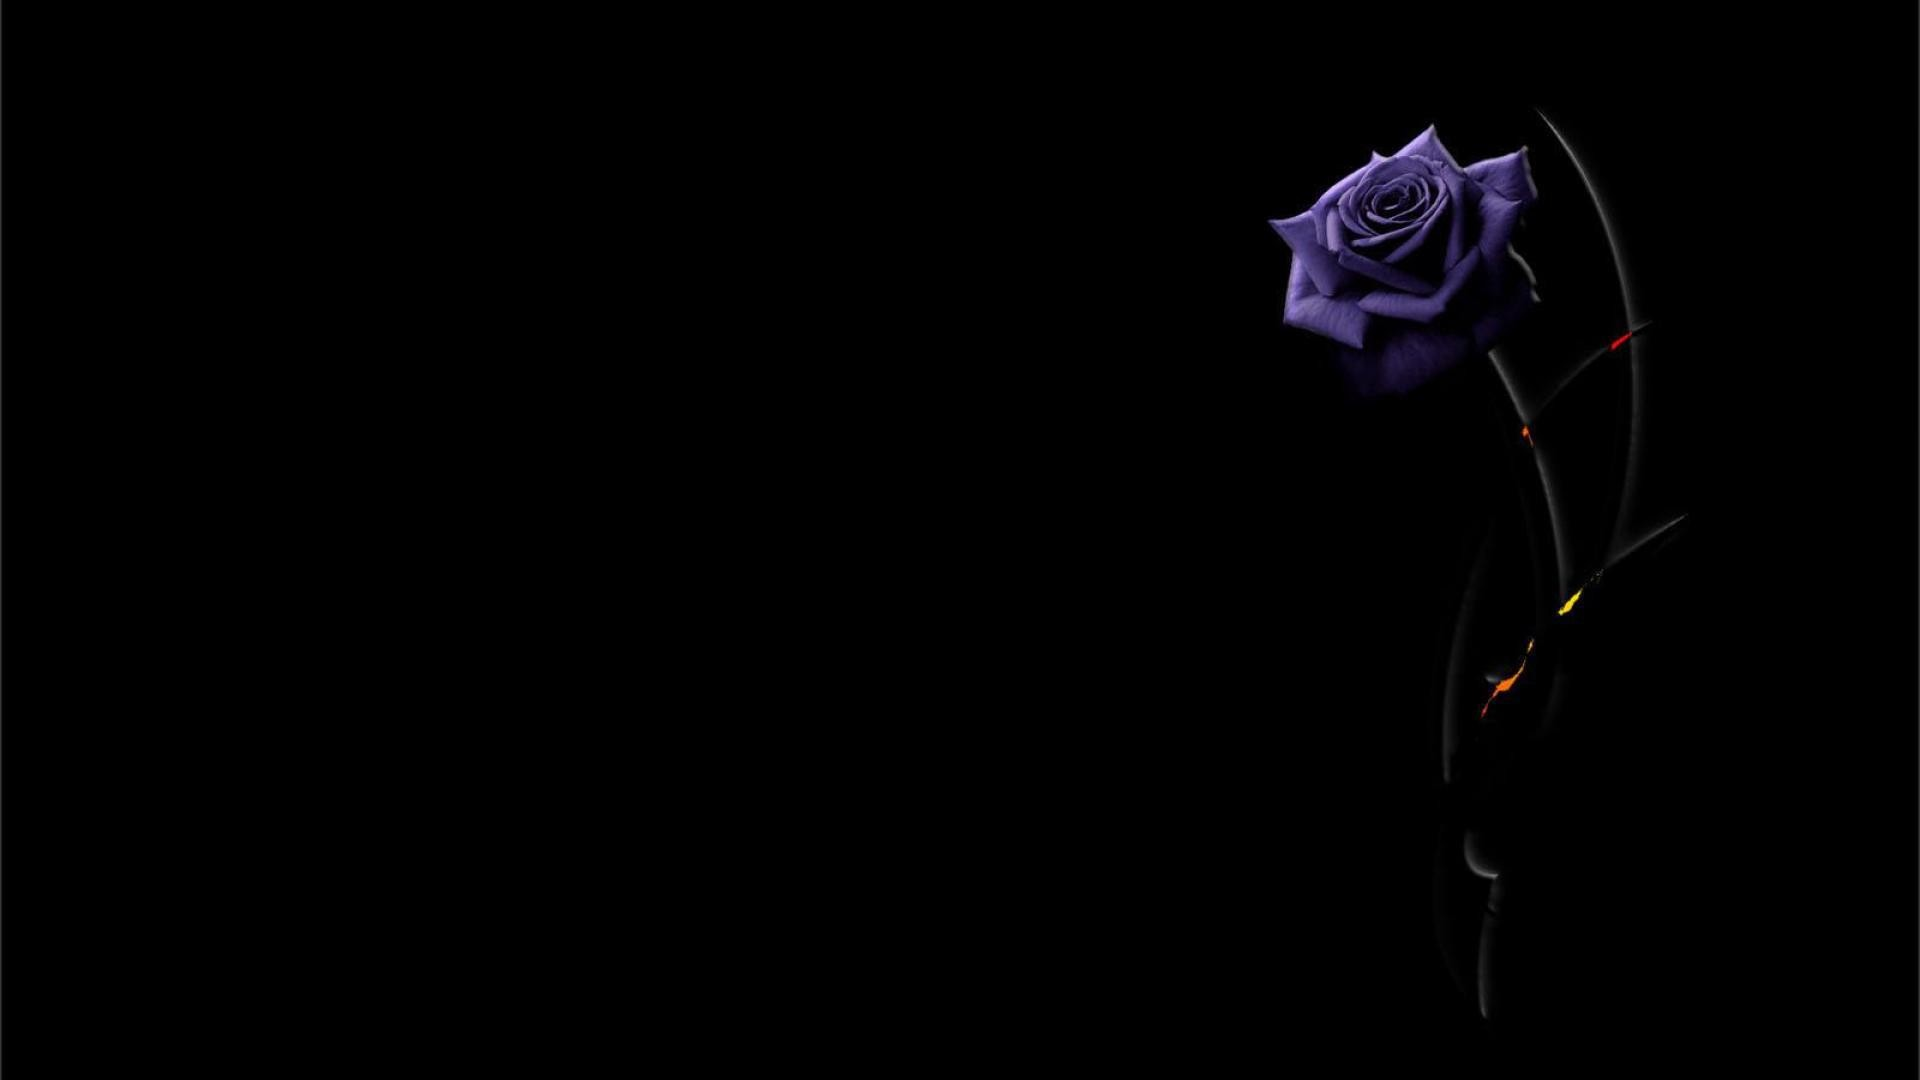 Dark Flower Wallpaper 70 Images